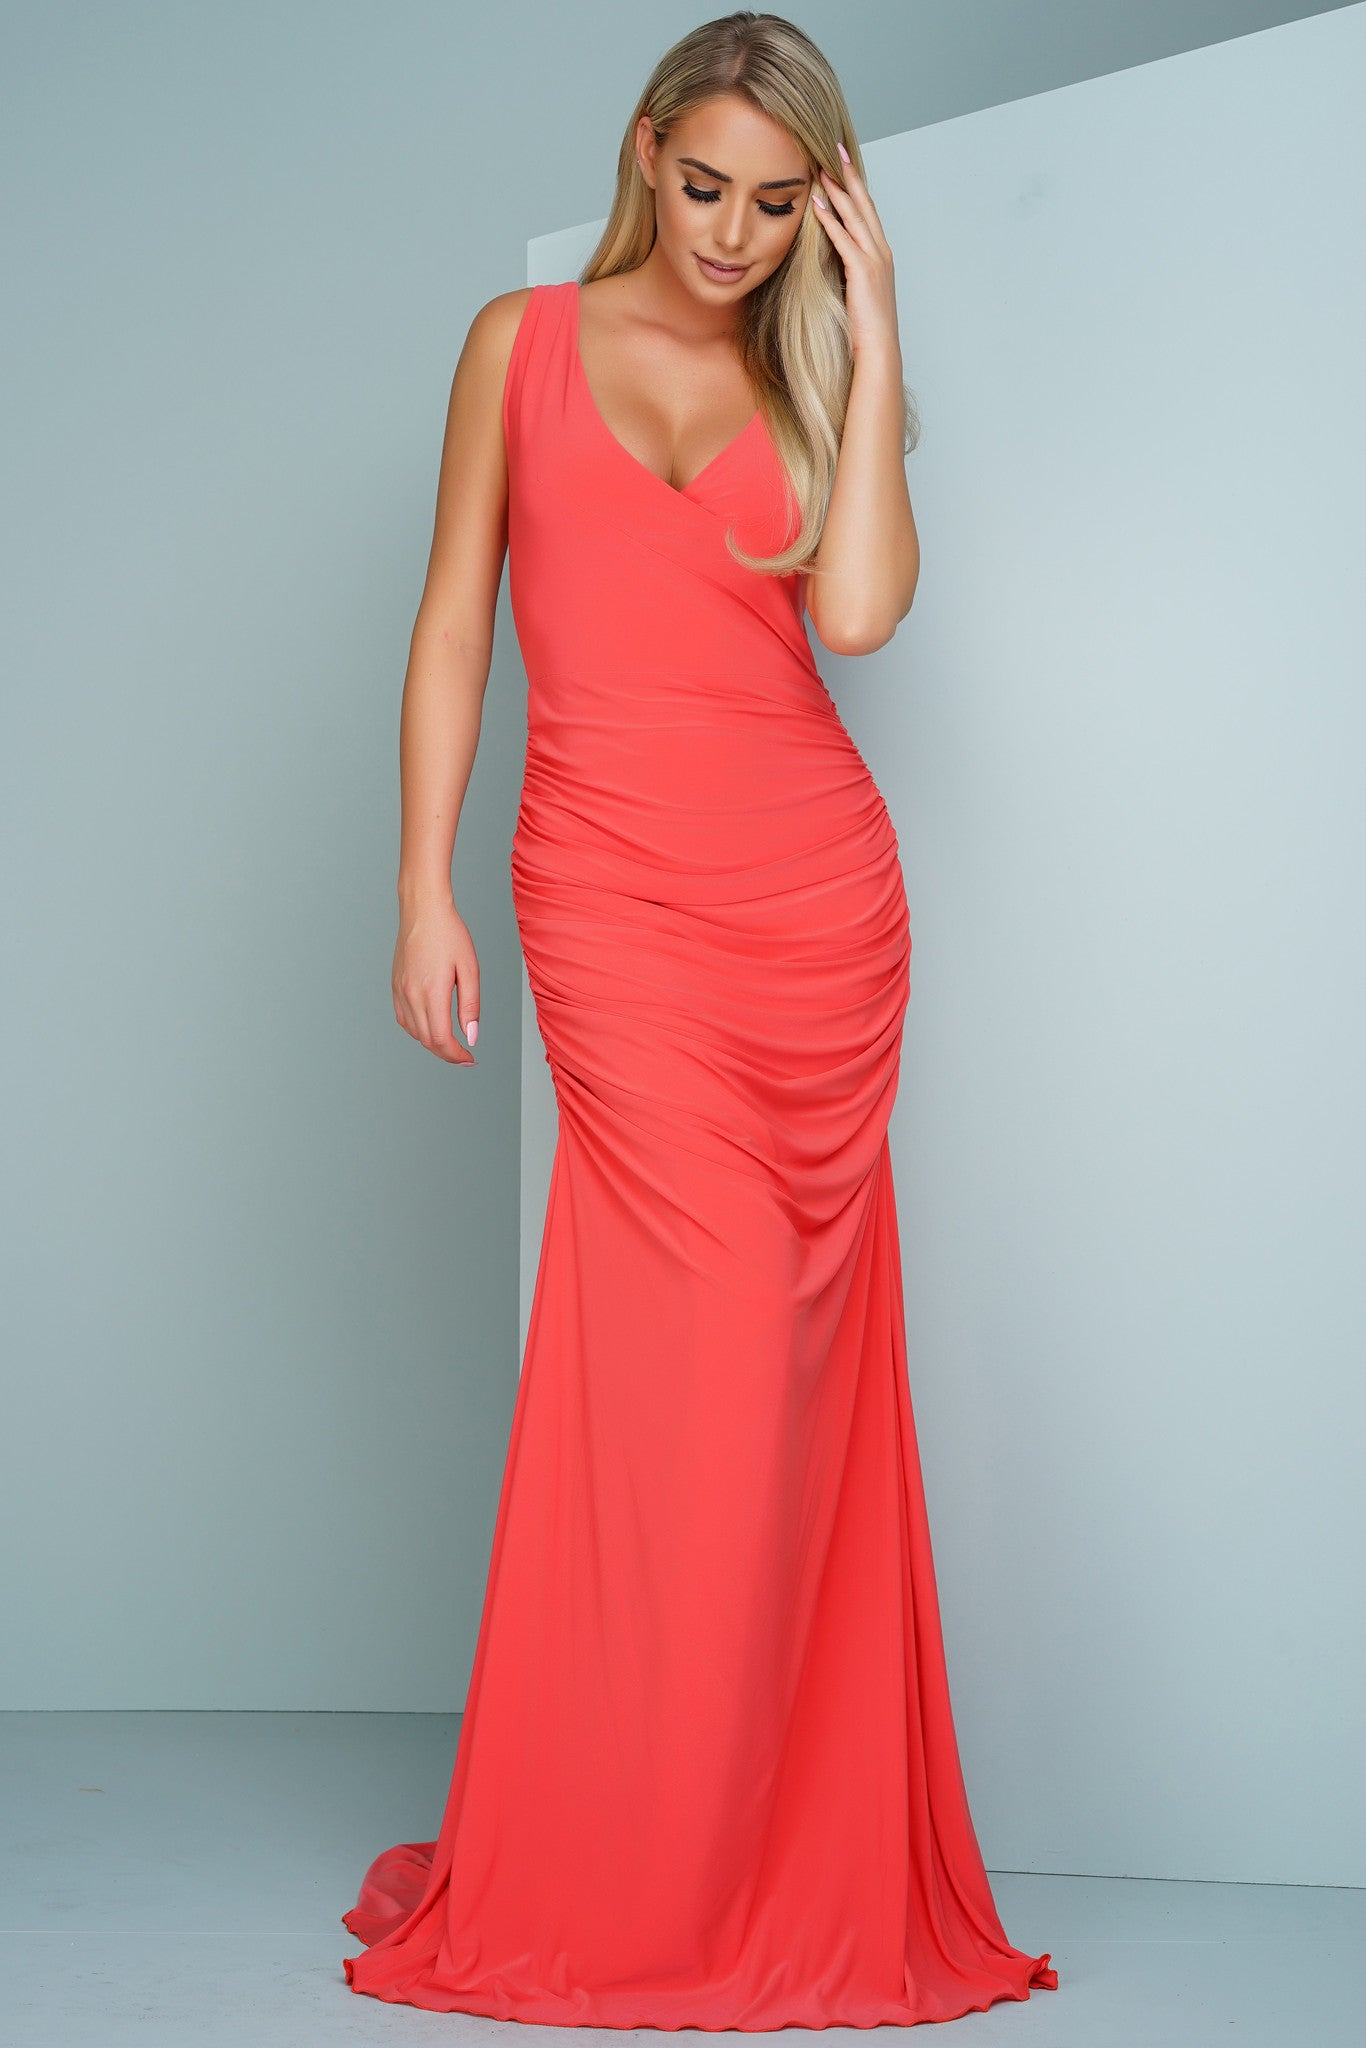 Kendra Sleeveless Evening Gown - Coral – WANTMYLOOK